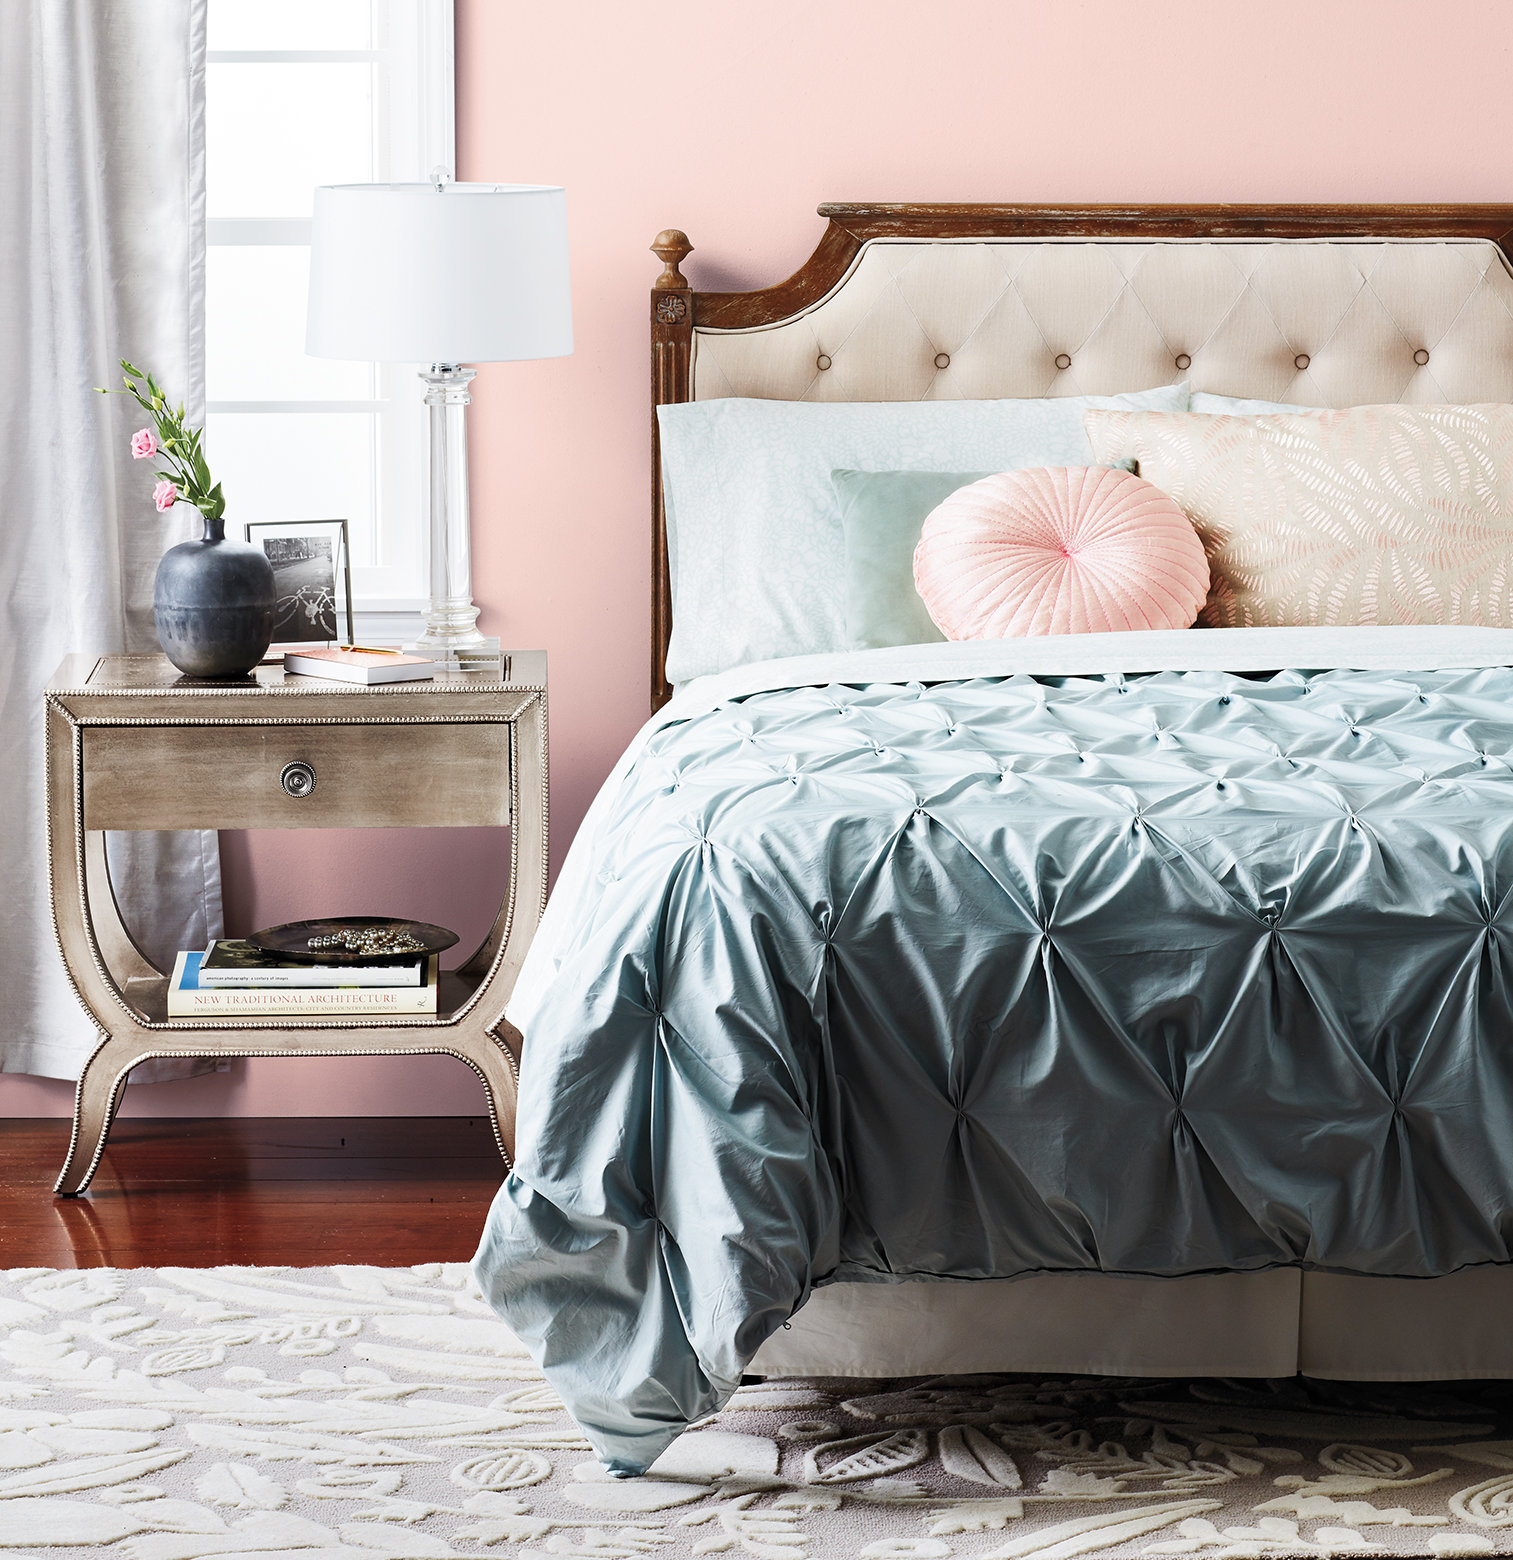 23 Decorating Tricks for Your Bedroom - Real Simple on Basic Room Ideas  id=84258